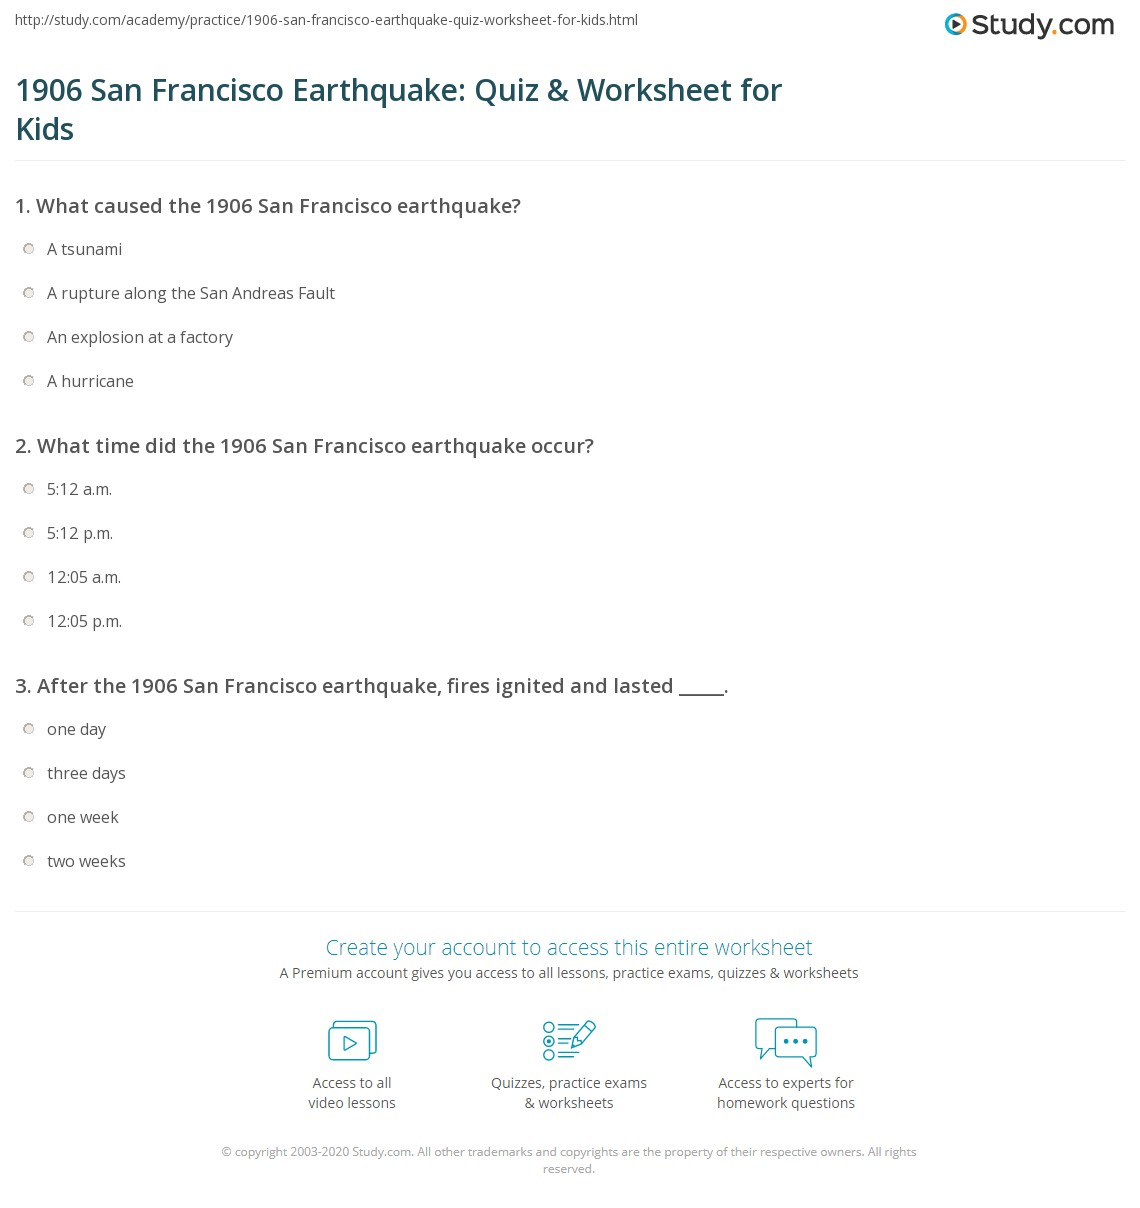 Worksheets Earthquakes For Kids Worksheets collection of earthquake worksheets for kids sharebrowse rringband